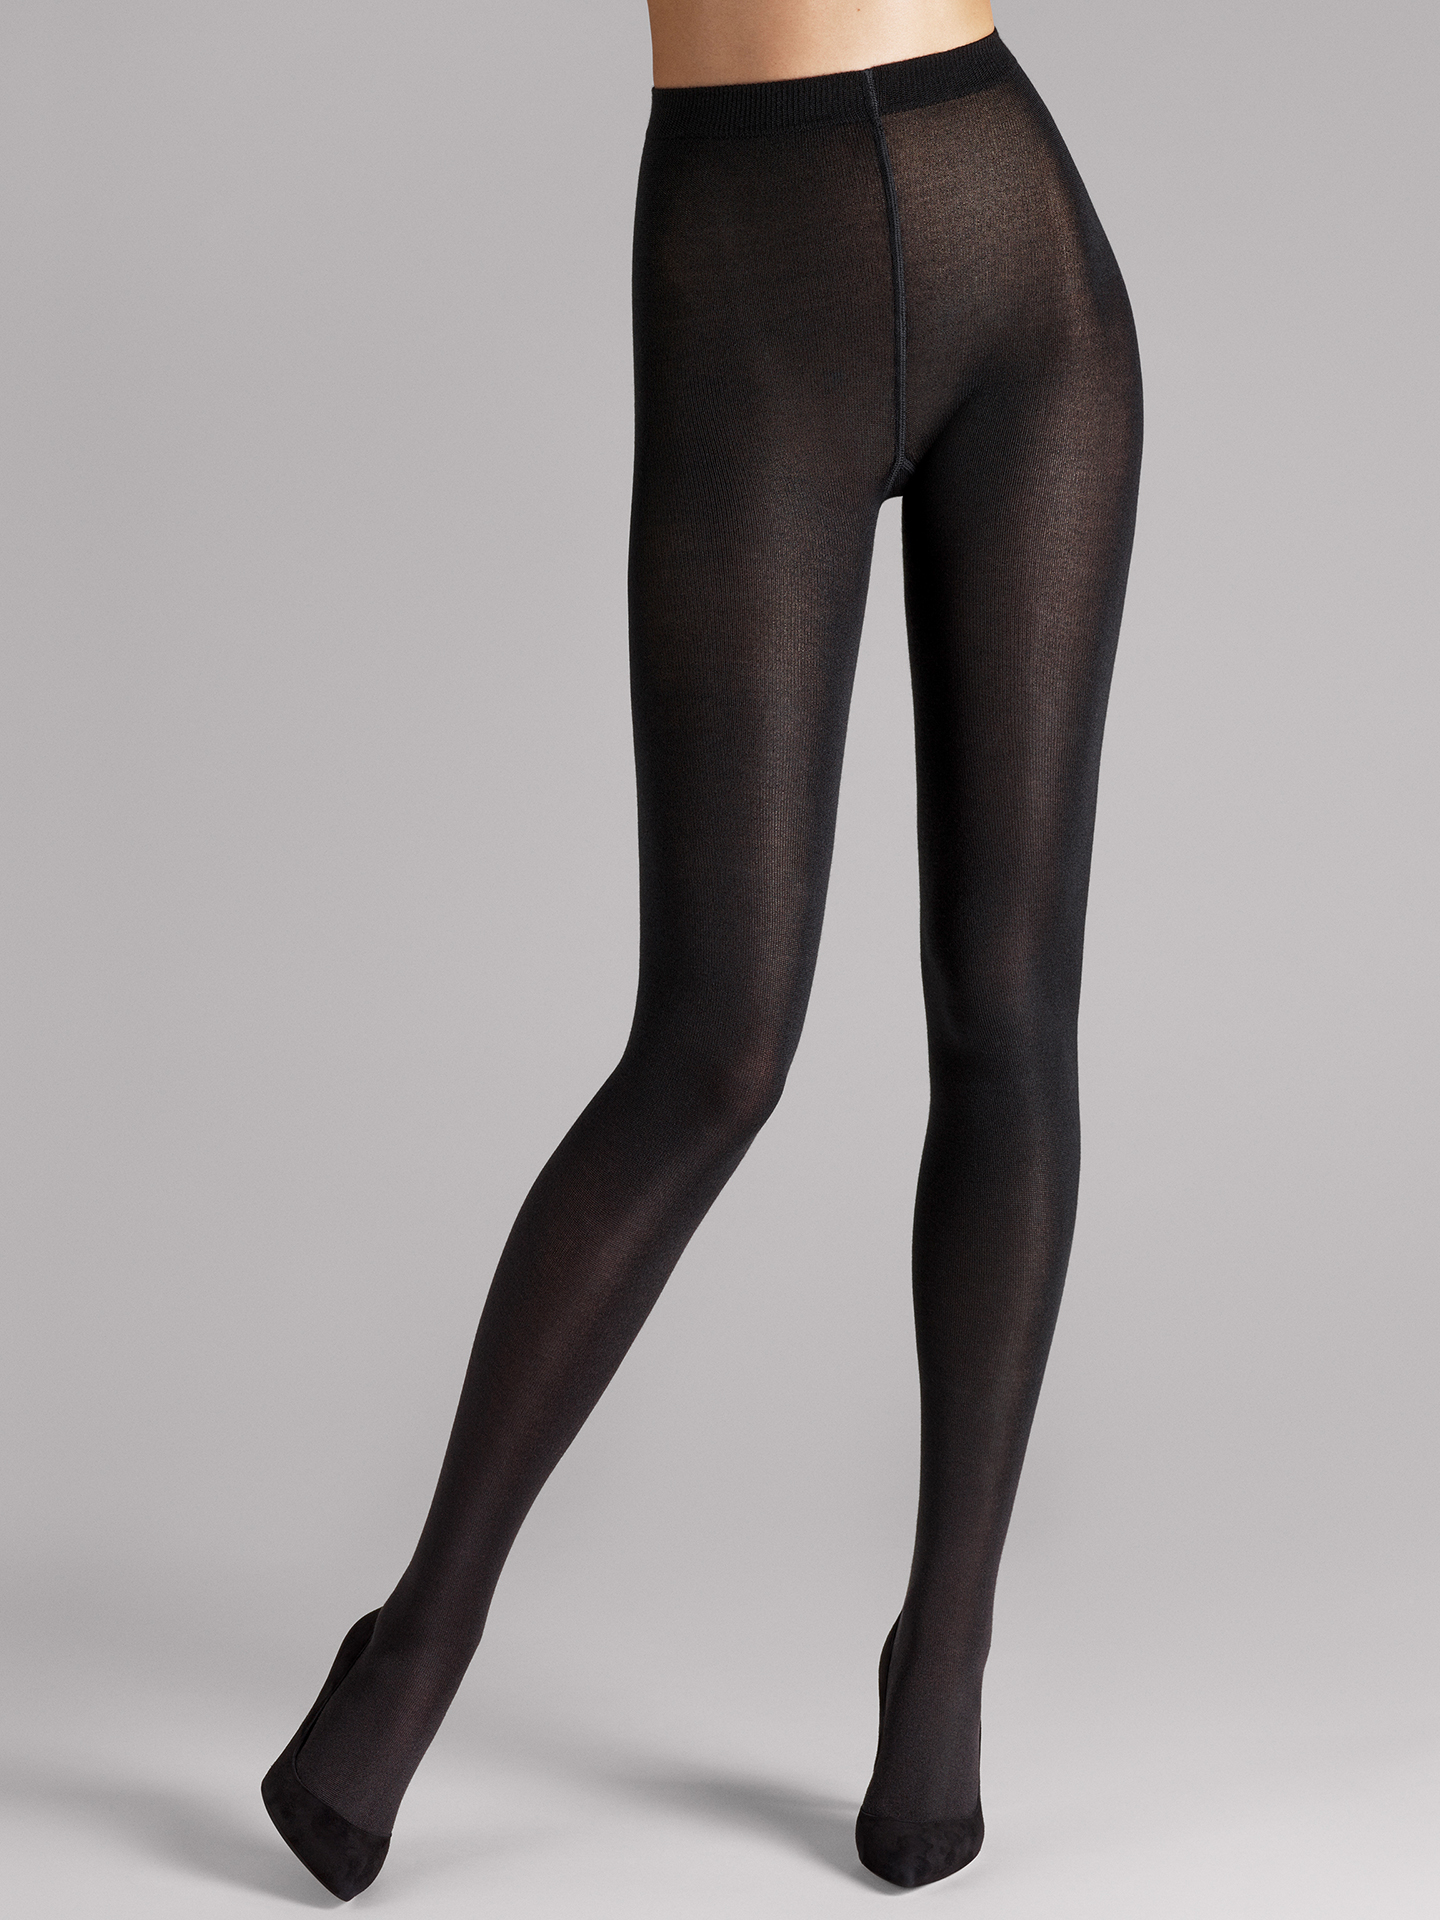 Cashmere/Silk Tights - 7005 - M